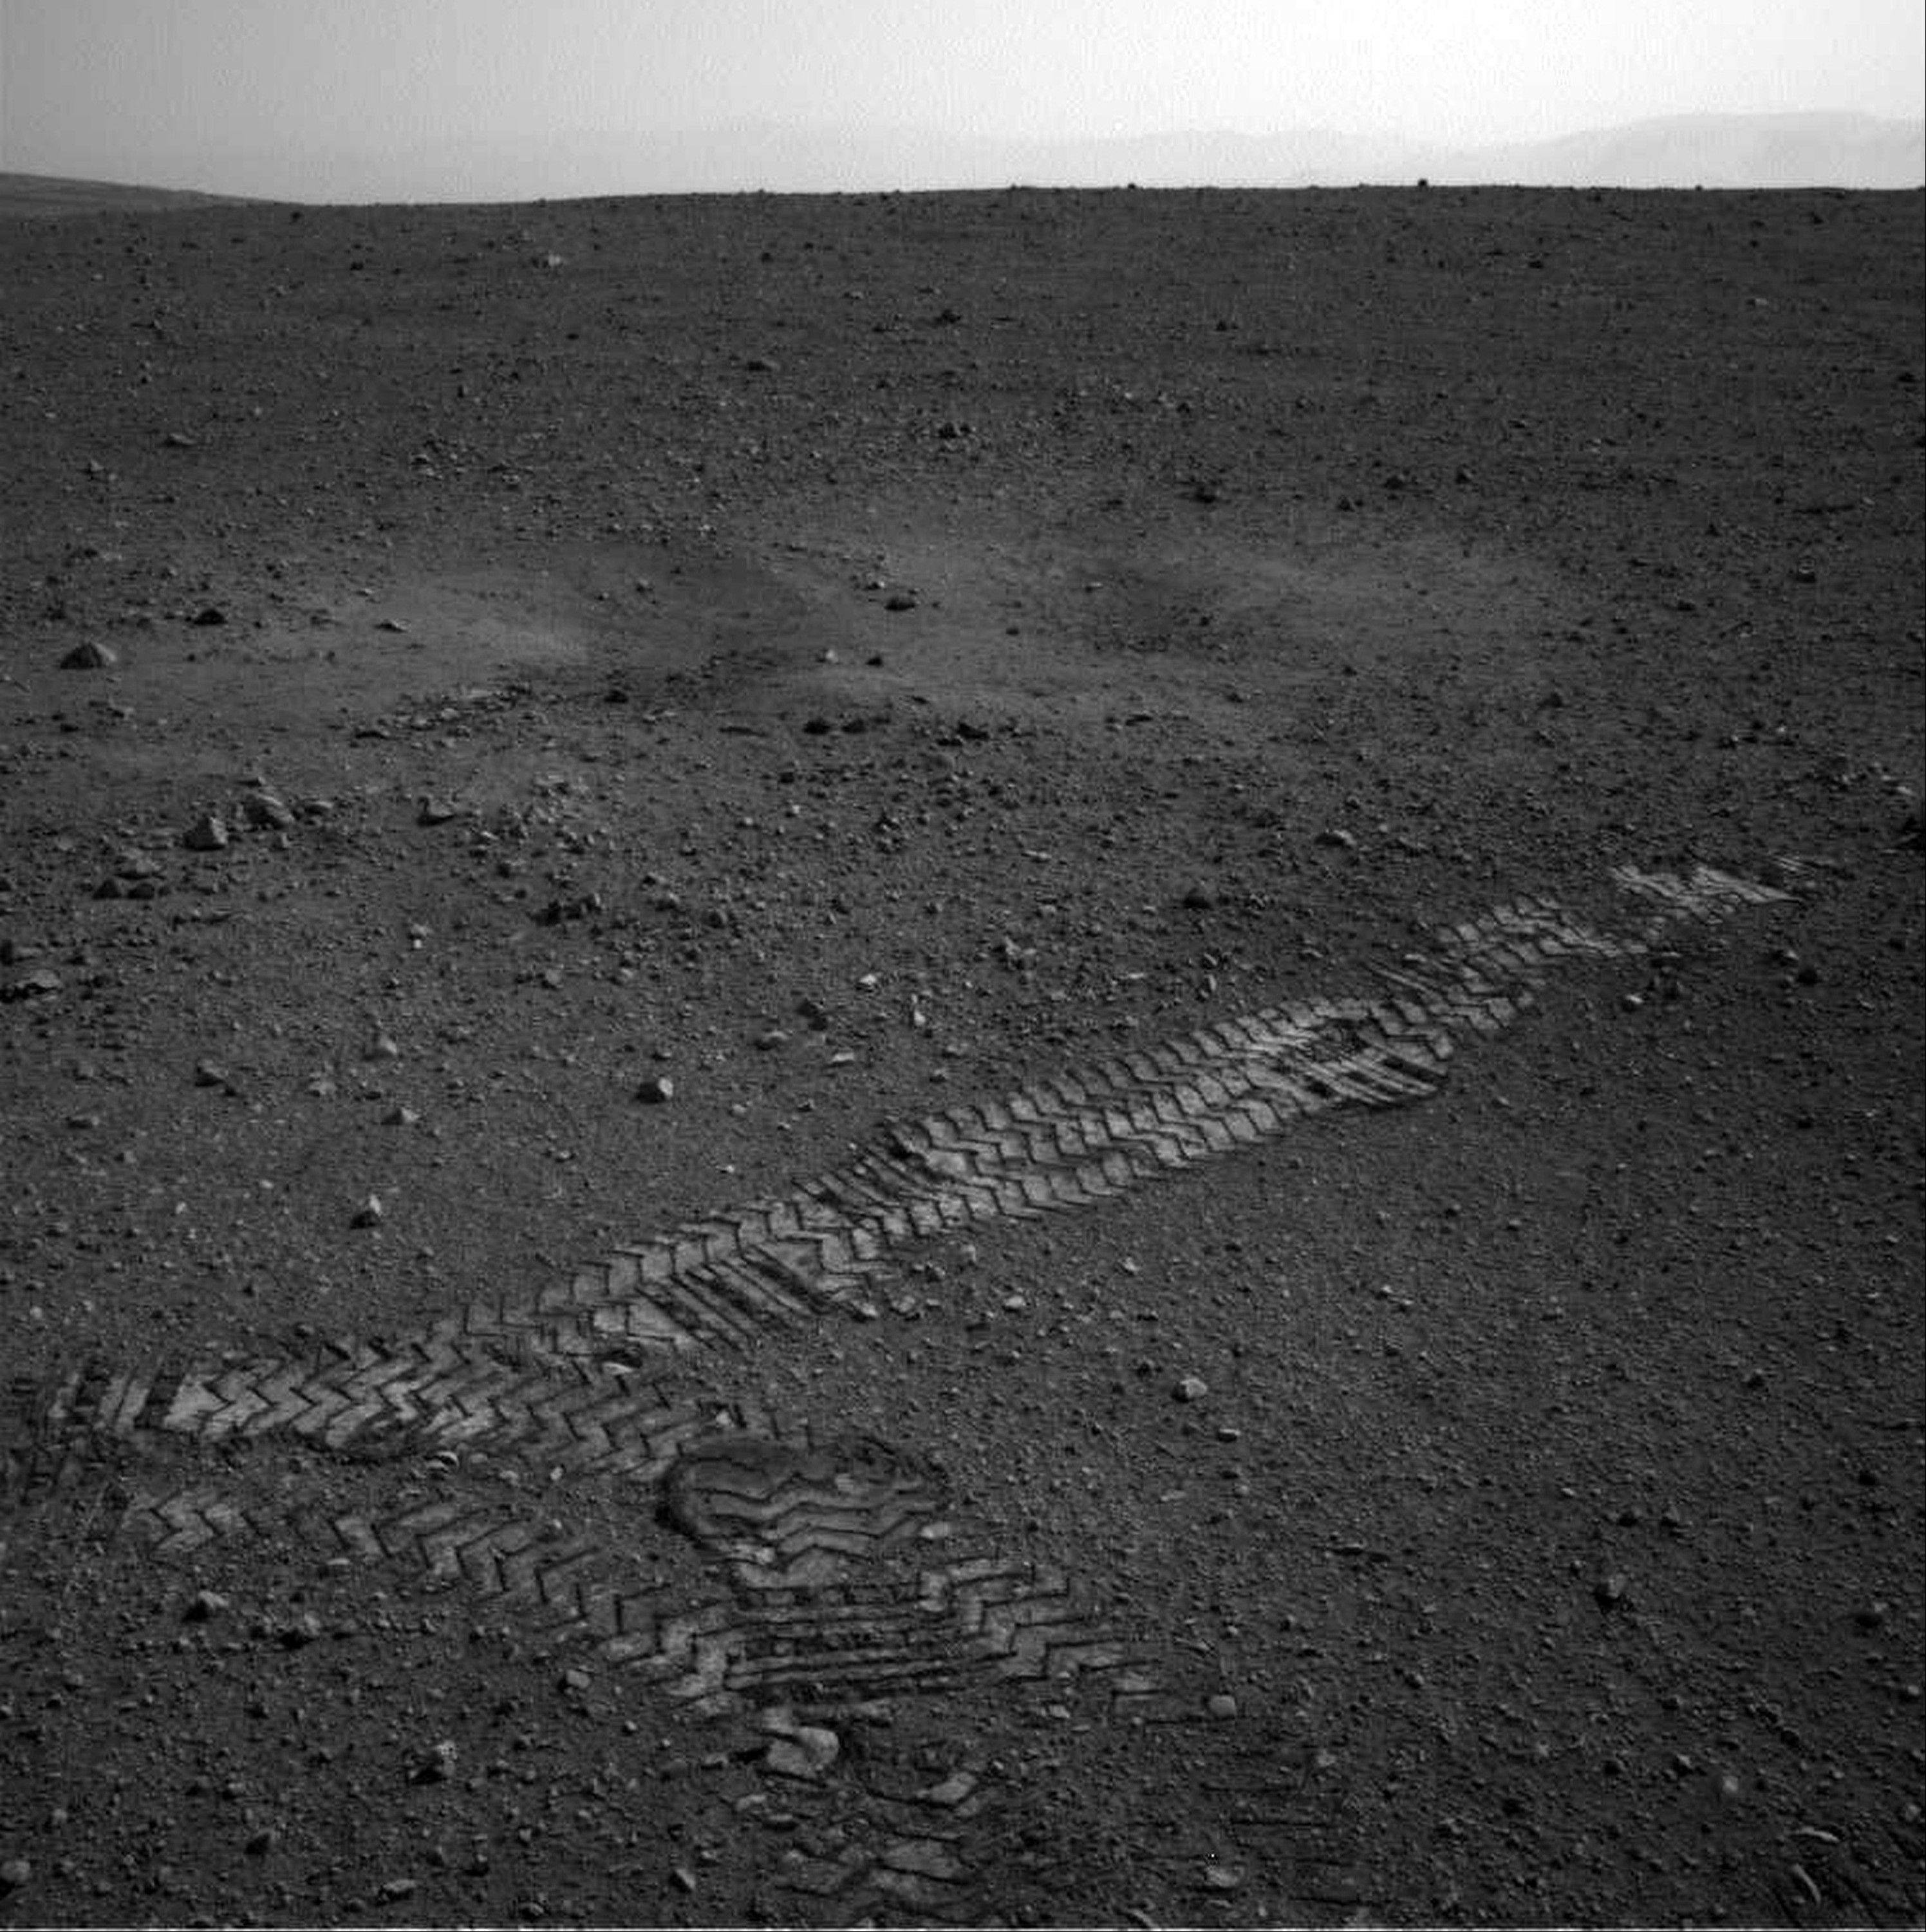 This image dated Wednesday and provided by NASA shows the Curiosity rover�s wheel tracks on the surface of Mars an image sent from one of the rover�s cameras.